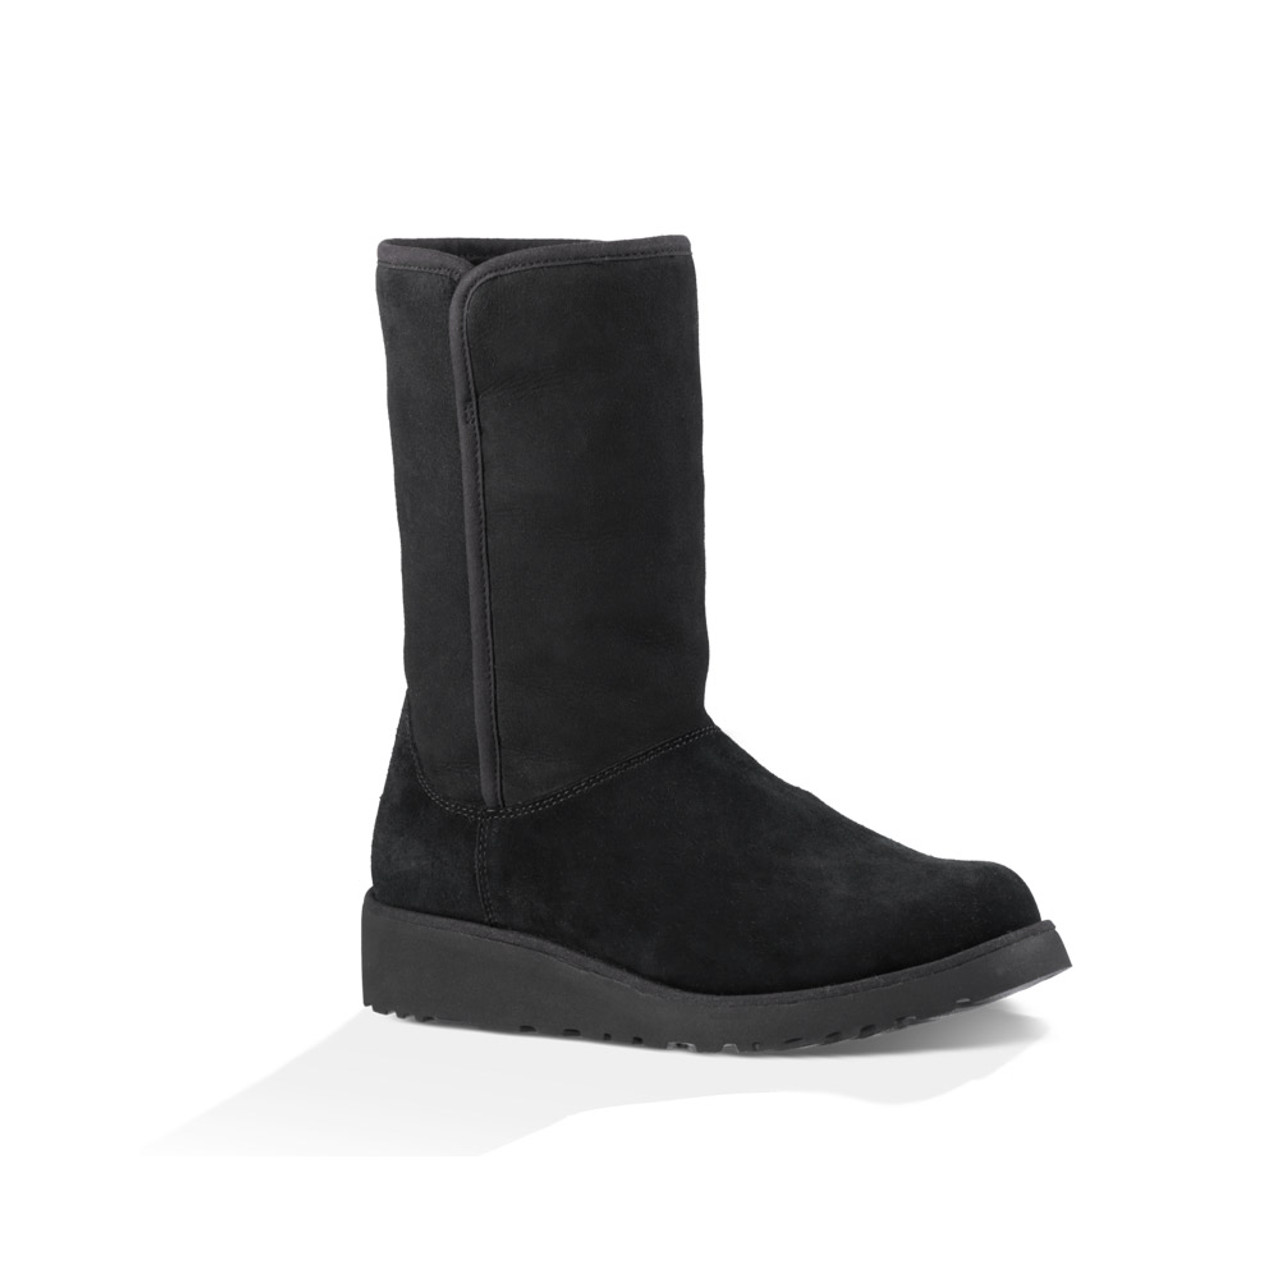 75b87dd488d UGG Women's Amie Boot Black